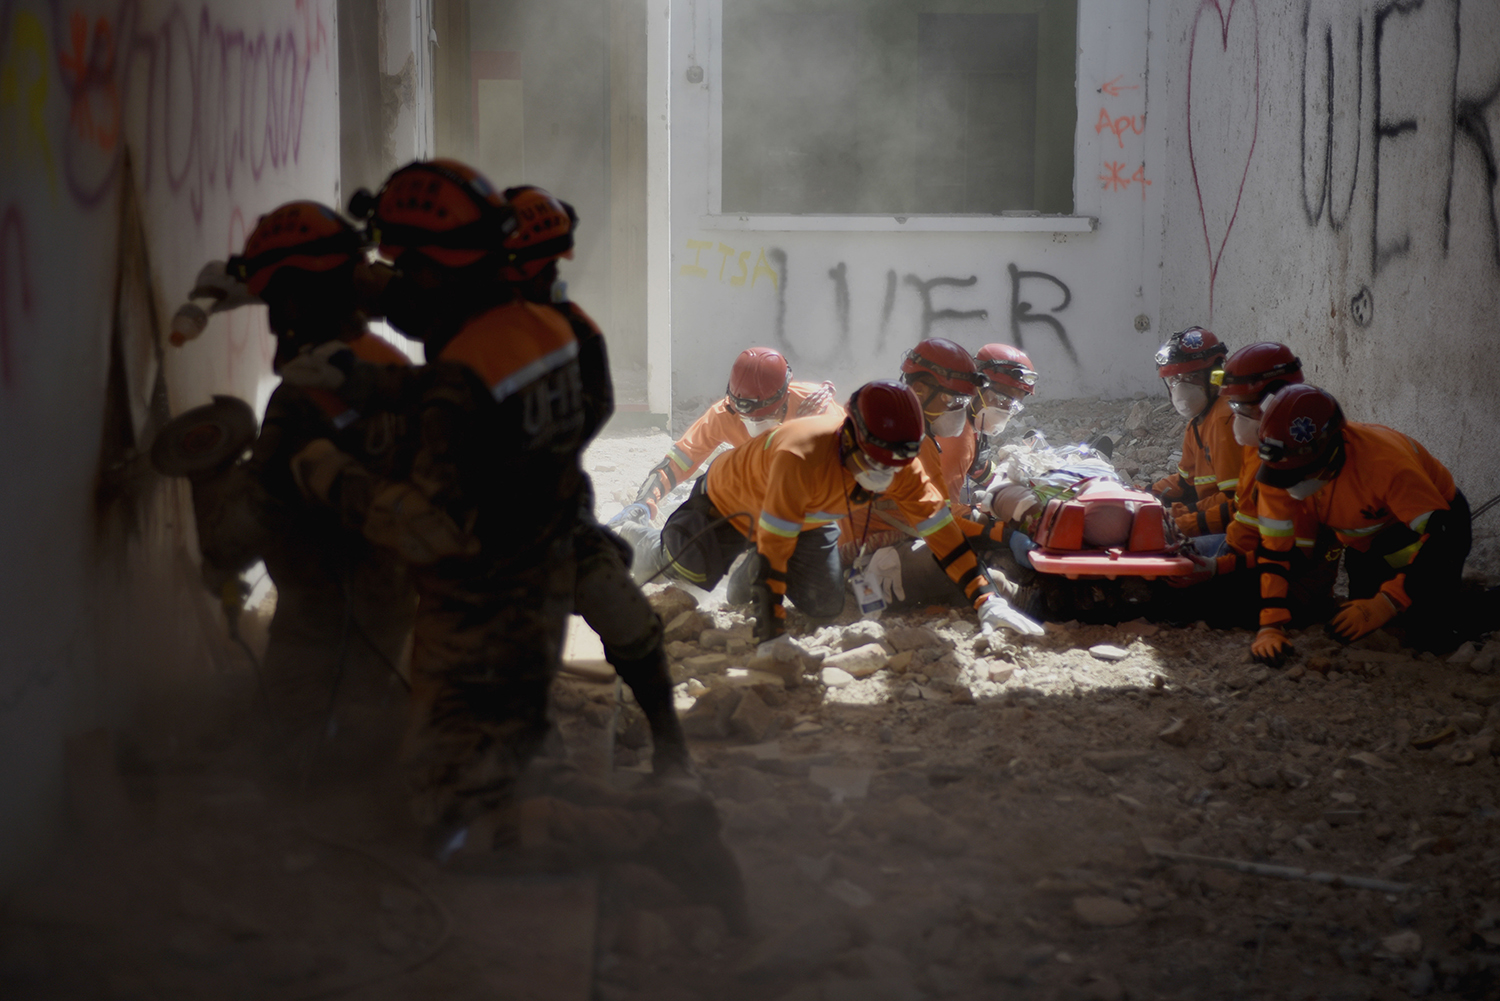 A group of rescuers take part in an earthquake drill in Guatemala City on Feb. 4. More than 360,000 people took part in the earthquake-evacuation drill in the Guatemalan capital, marking the anniversary of the 1976 earthquake that killed 23,000 people. JOHAN ORDONEZ/AFP via Getty Images